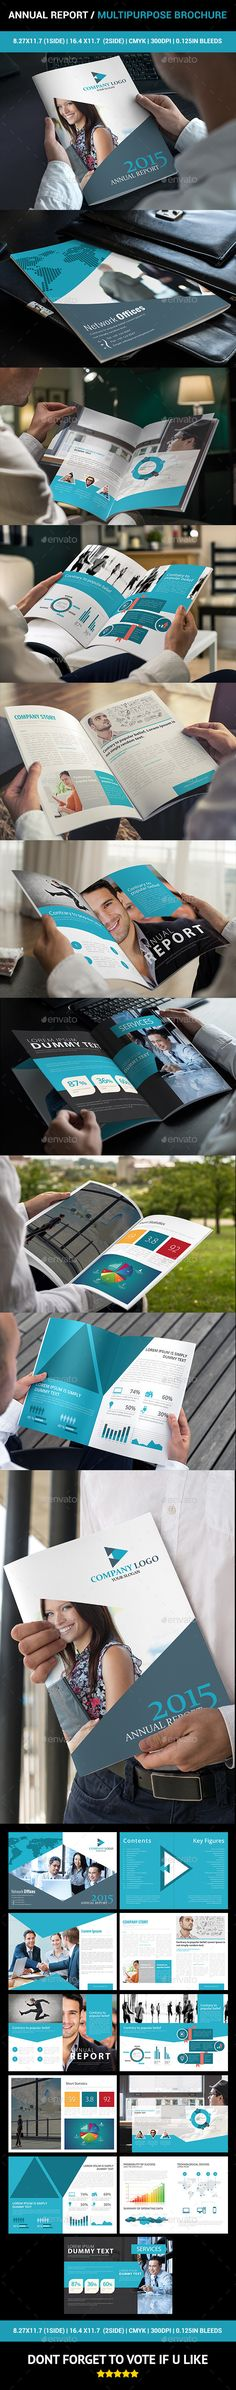 Brochure -  Files Include:  - 11 AI Files (Included cover & inside pages) - A4 Size 8.27×11.7 (Single Side), 16.4×11.7 (2 Sided) - CMYK - 300DPI - 0.125in Bleeds - Images not included